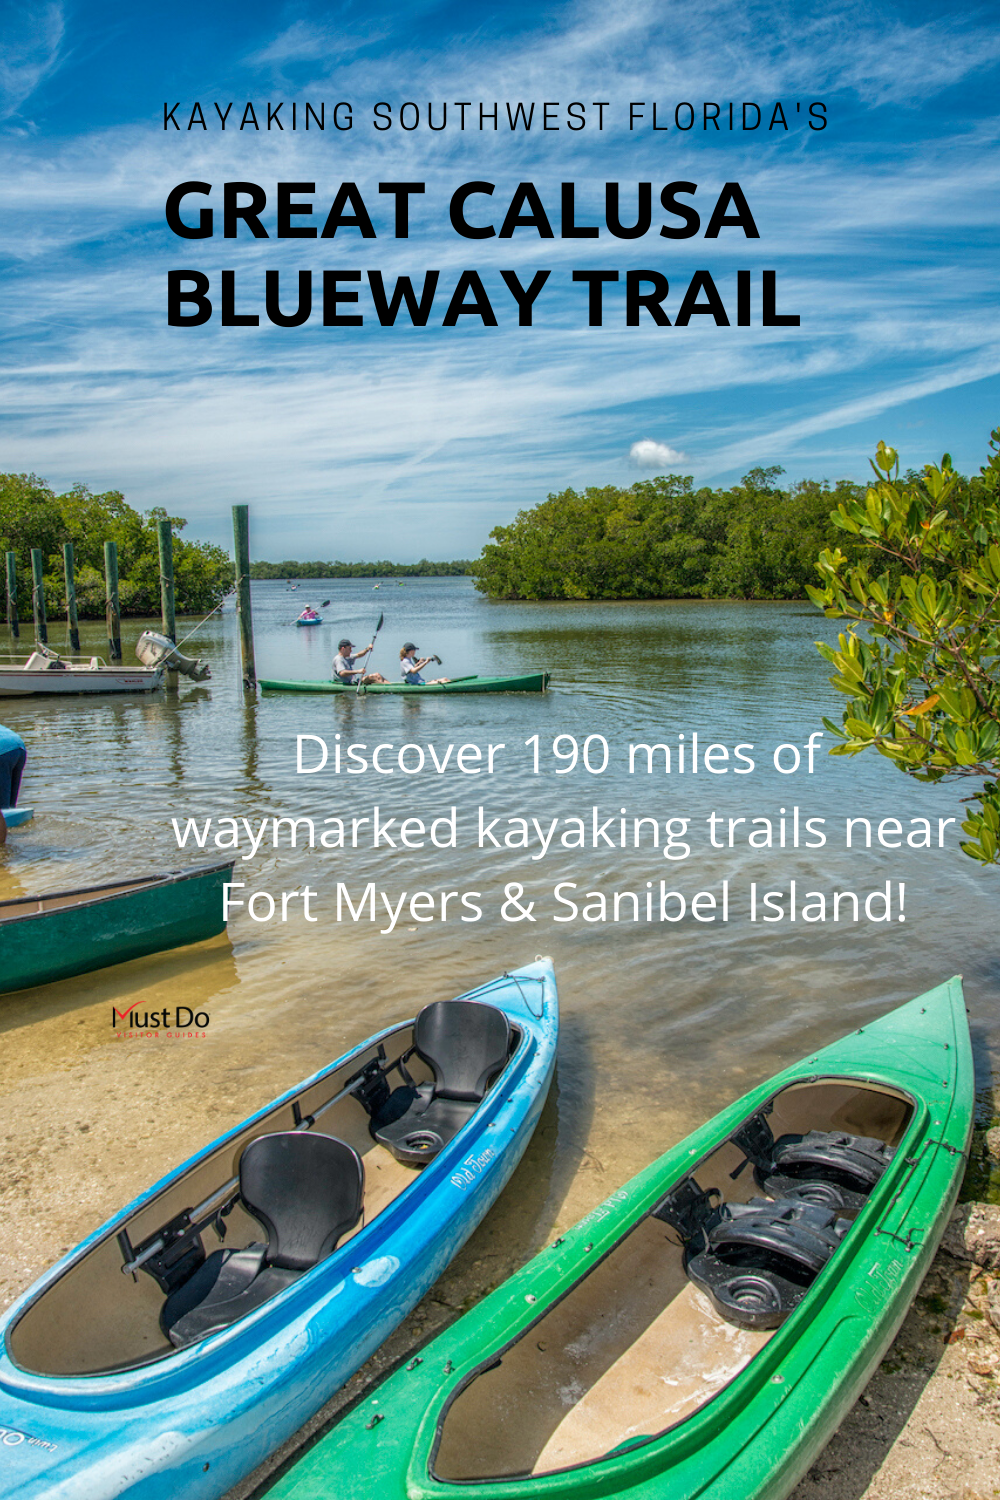 Southwest Florida's Great Calusa Blueway provides paddlers with 190 miles of waymarked kayaking trails through unspoiled waterways near Fort Myers and Sanibel Florida. Photo credit Jennifer Brinkman. Must Do Visitor Guides | MustDo.com